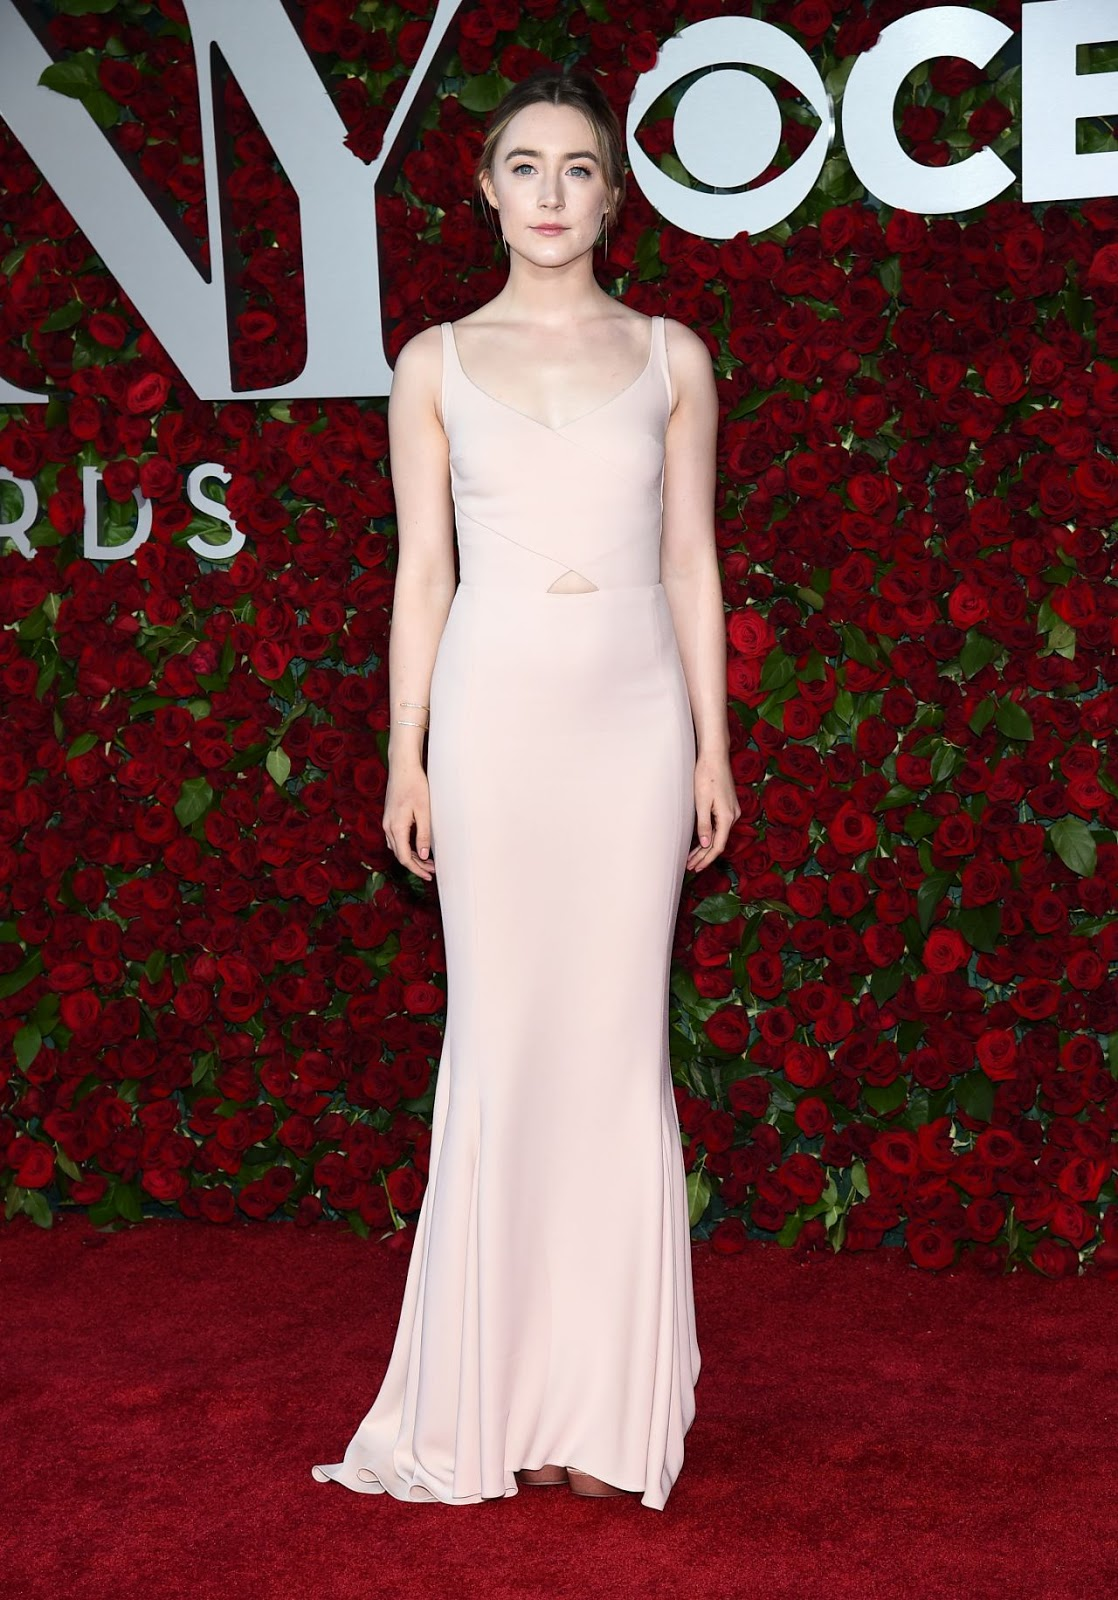 Saoirse Ronan wears nude gown to the 2016 Tony Awards in NY